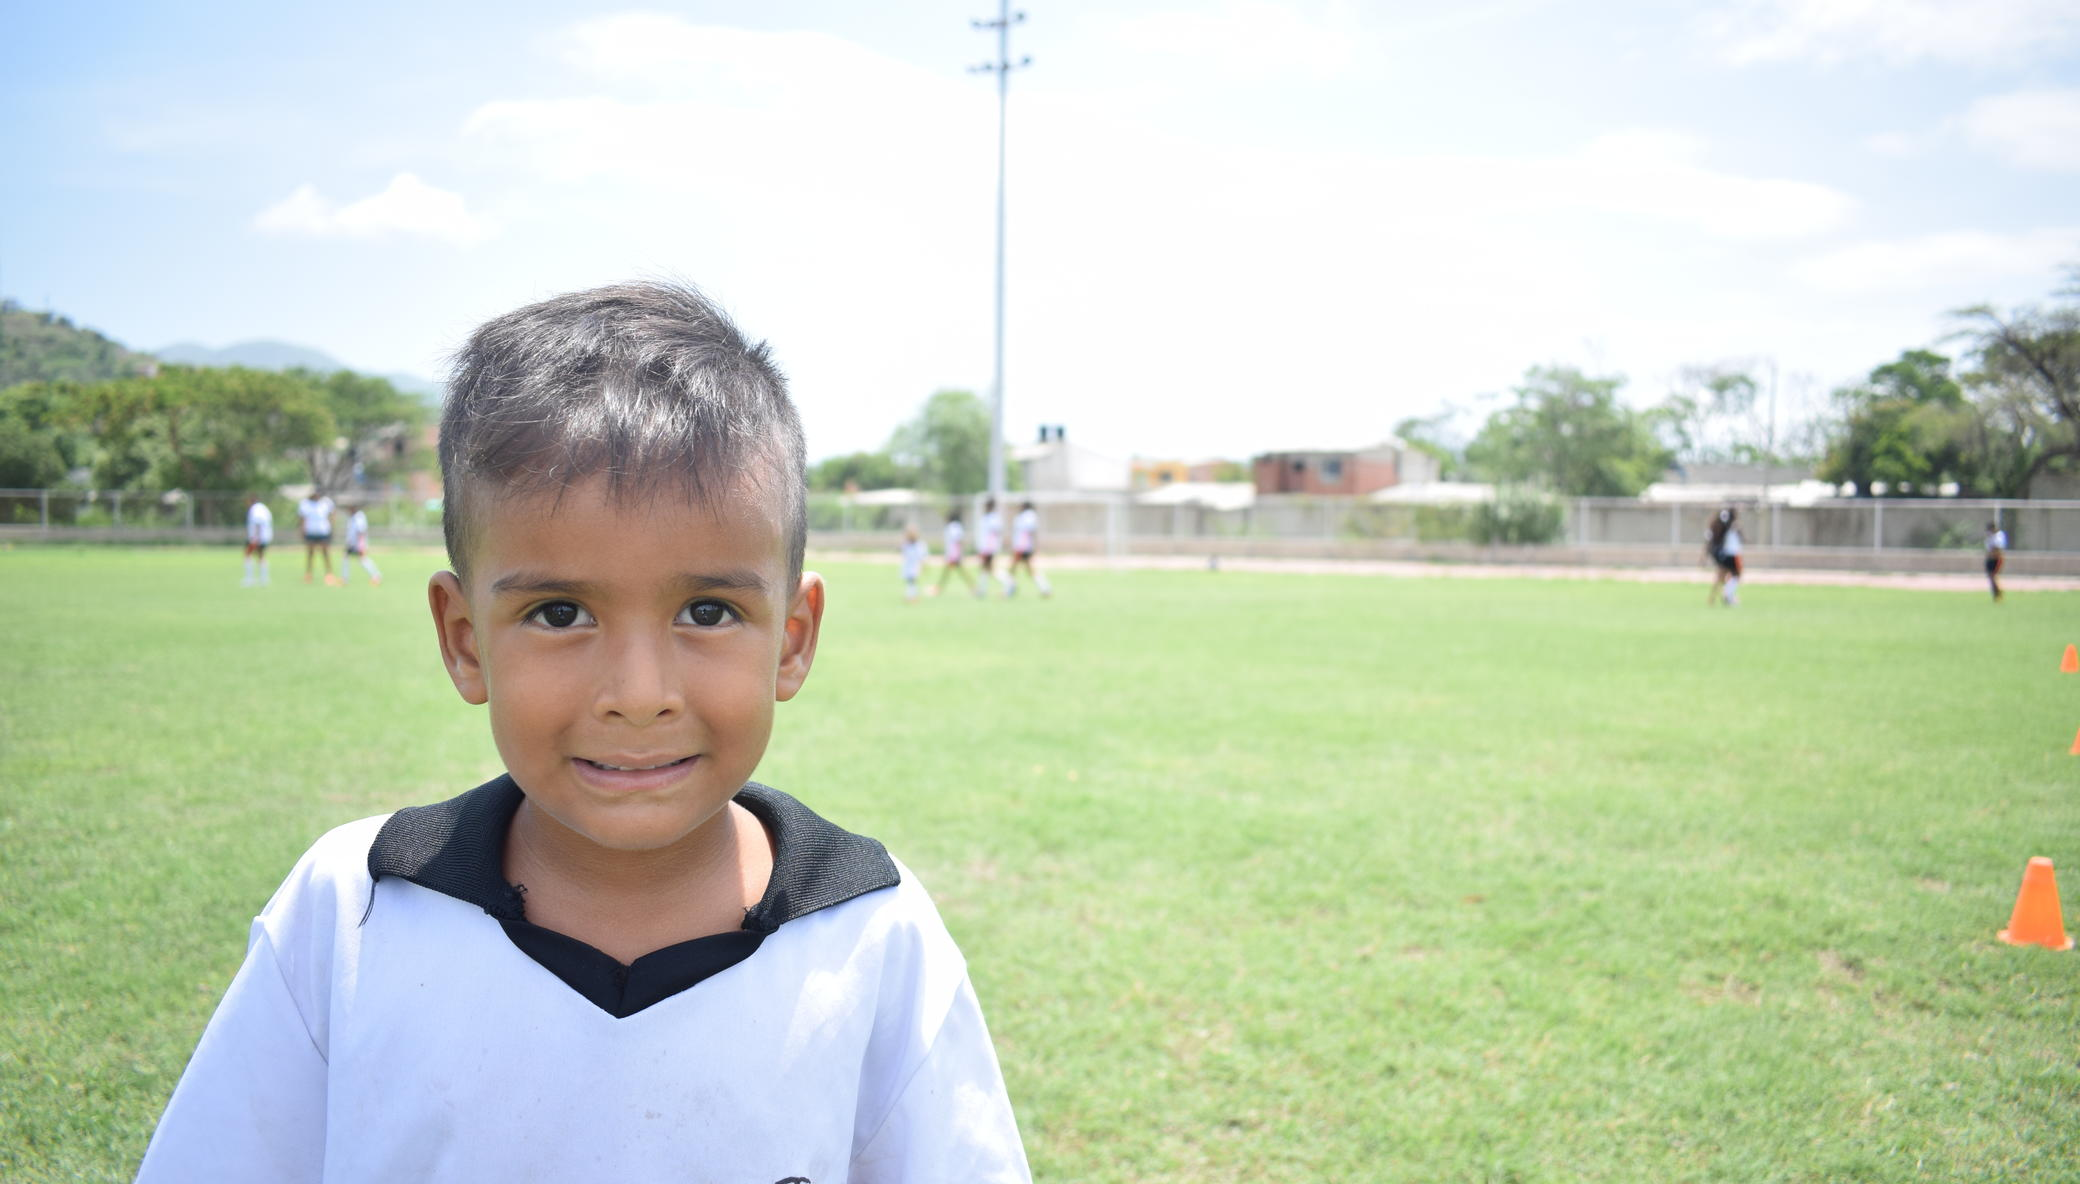 Creating a haven for kids through football and art